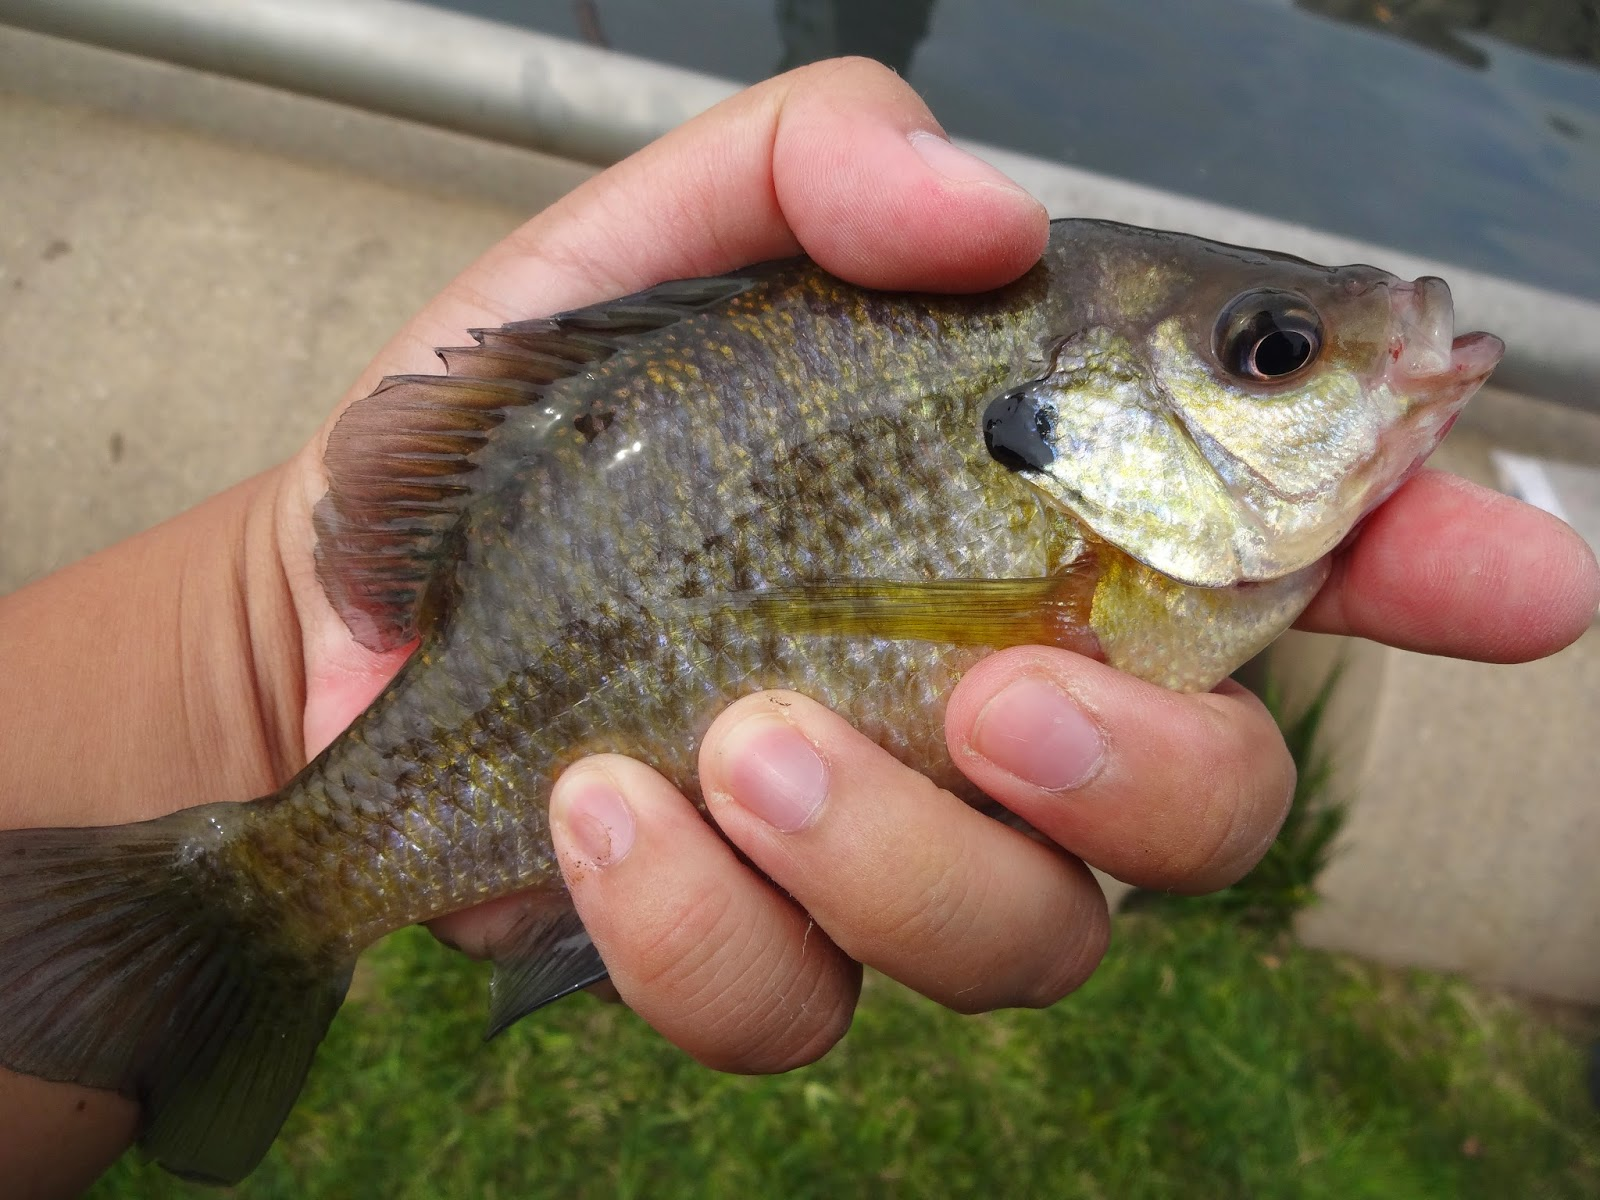 Extreme philly fishing september fishing sessions 09 21 for Bluegill fishing bait